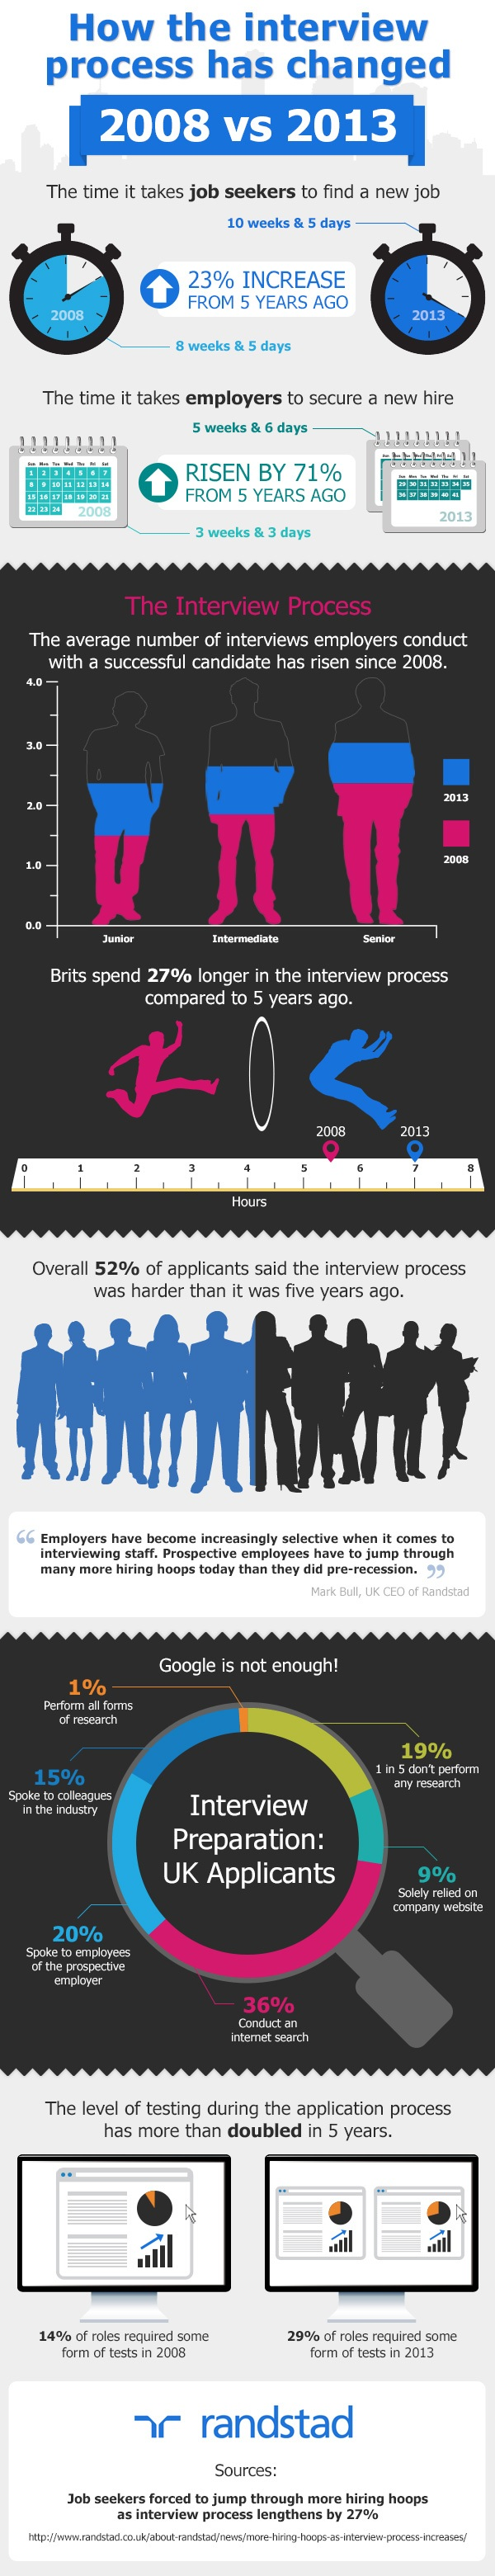 2. How the interview process has changed